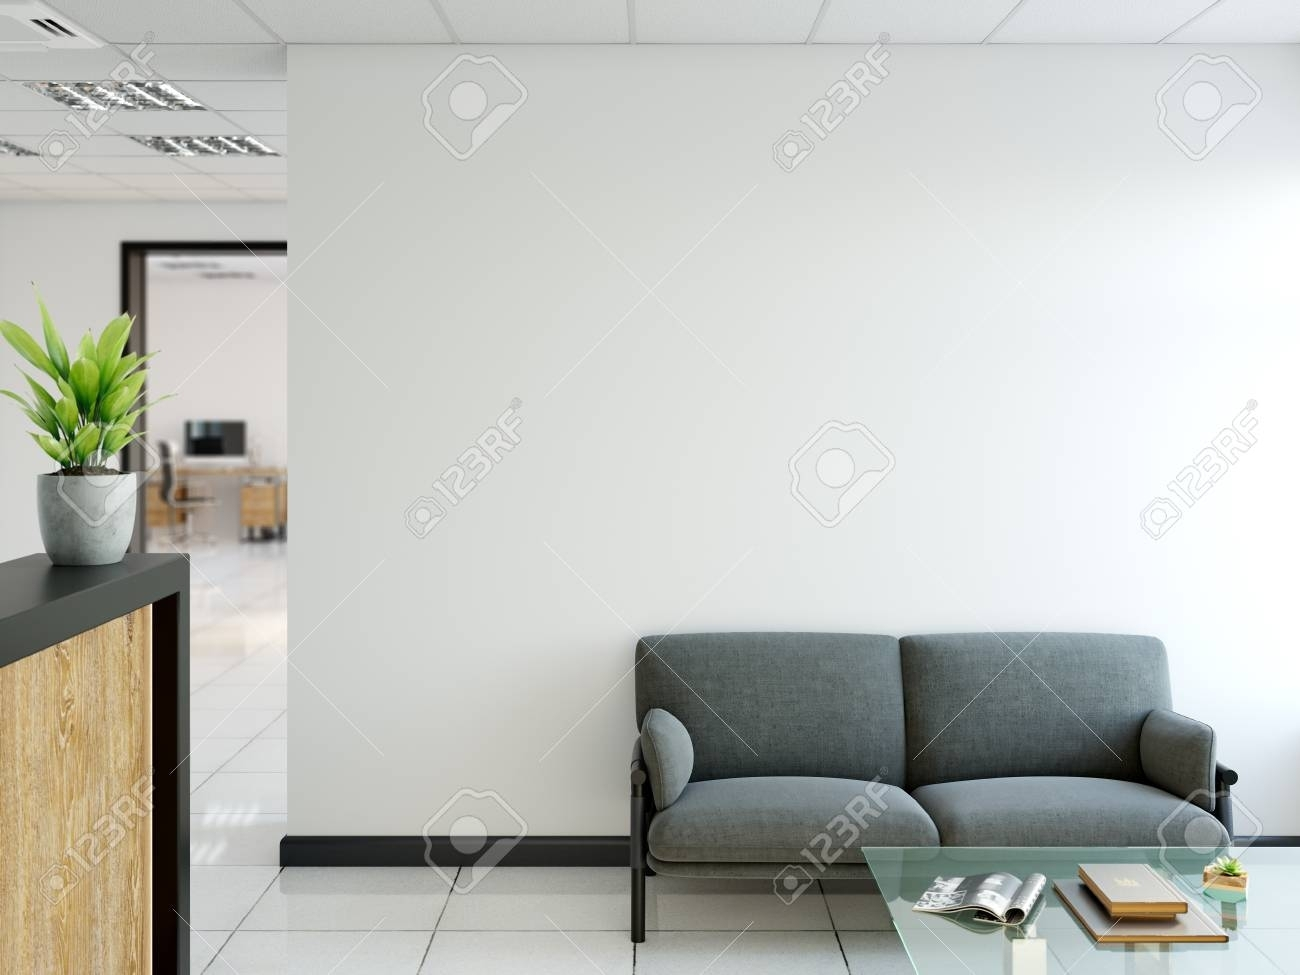 Office Wall Mock Up Interior. Wall Art. 3D Rendering, 3D intended for Office Wall Art (Image 17 of 20)